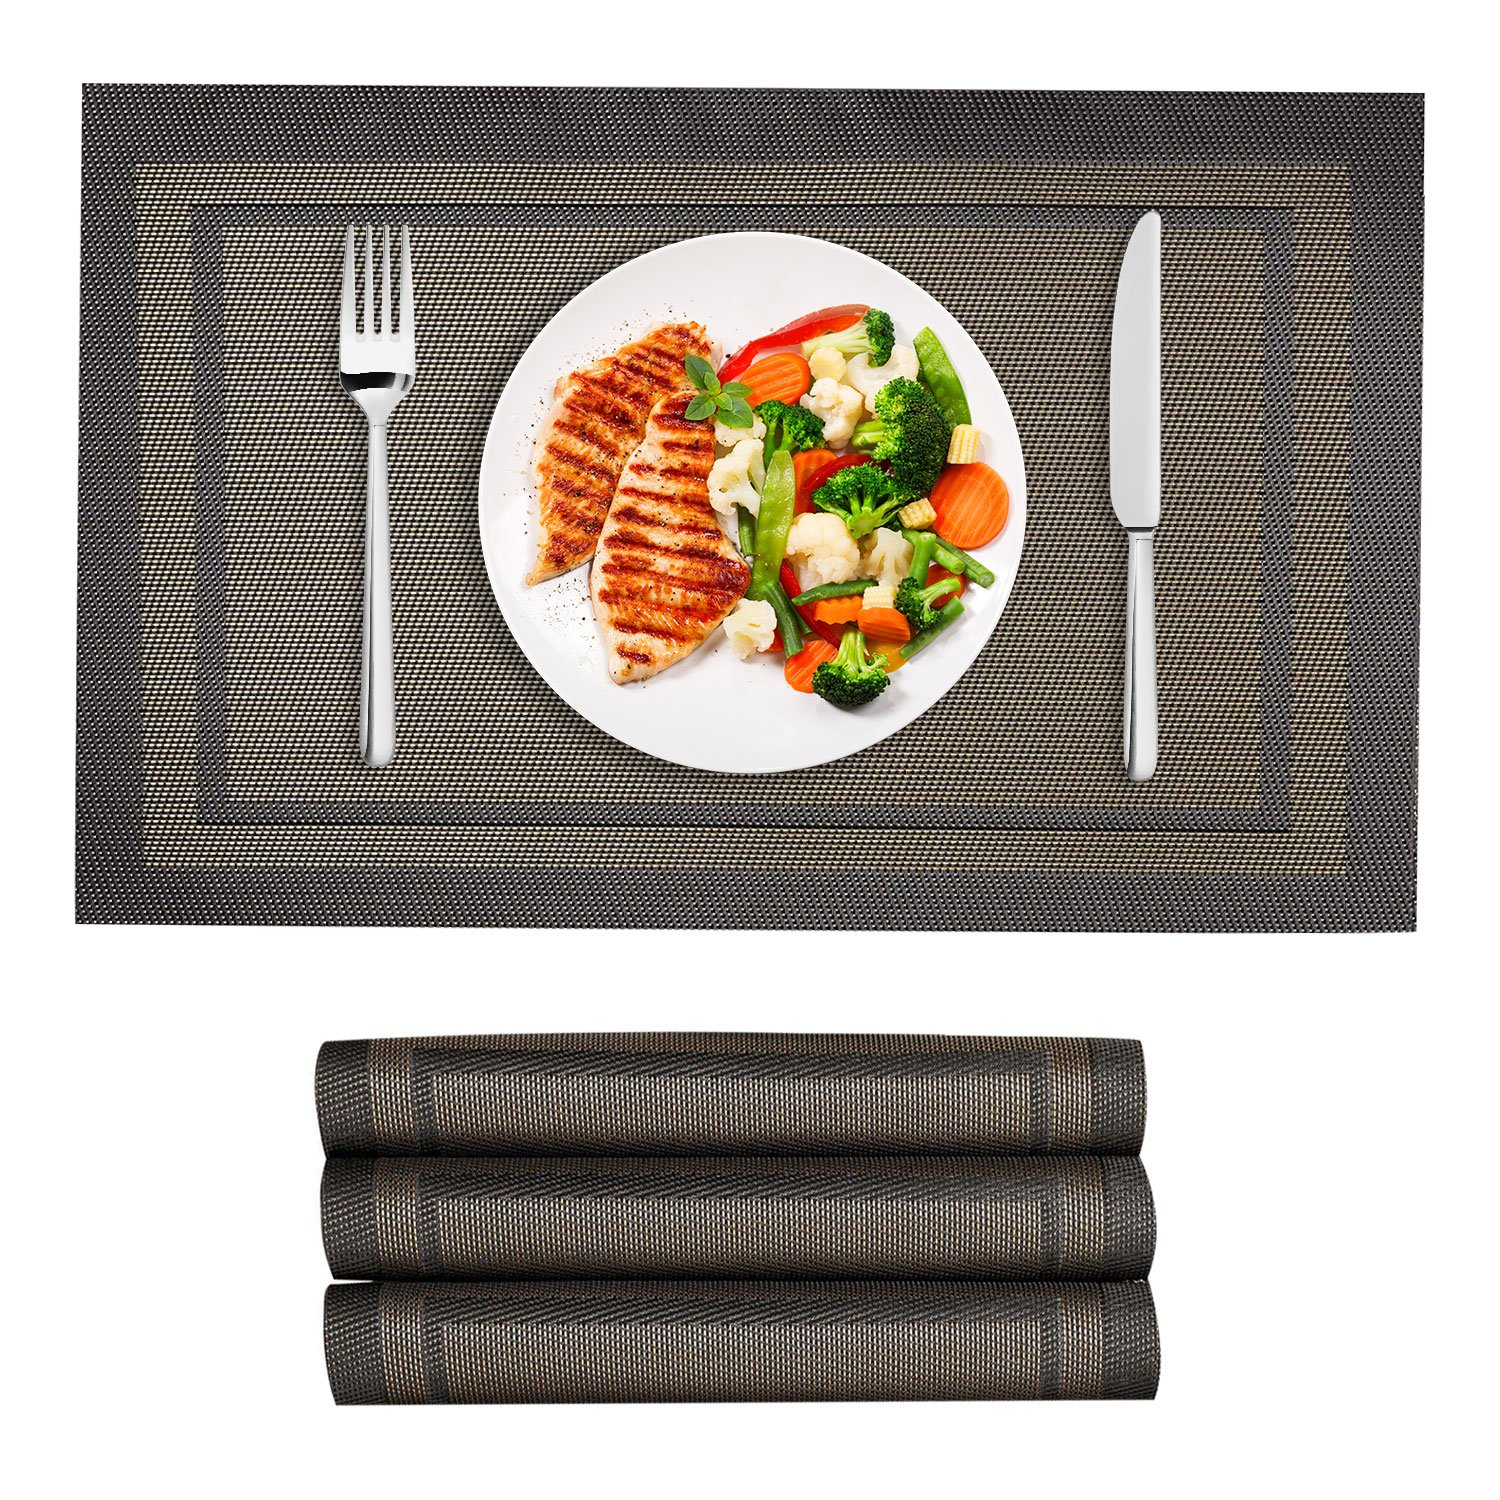 VEEYOO Woven Vinyl Placemats Non-Slip Insulation Heat Stain Resistant Washable Table Placemats Kitchen Dining Table Top Meal Mat Place Mats,PVC,13x18,Set of 4, Green VYCD17004PP18CP150-FBA